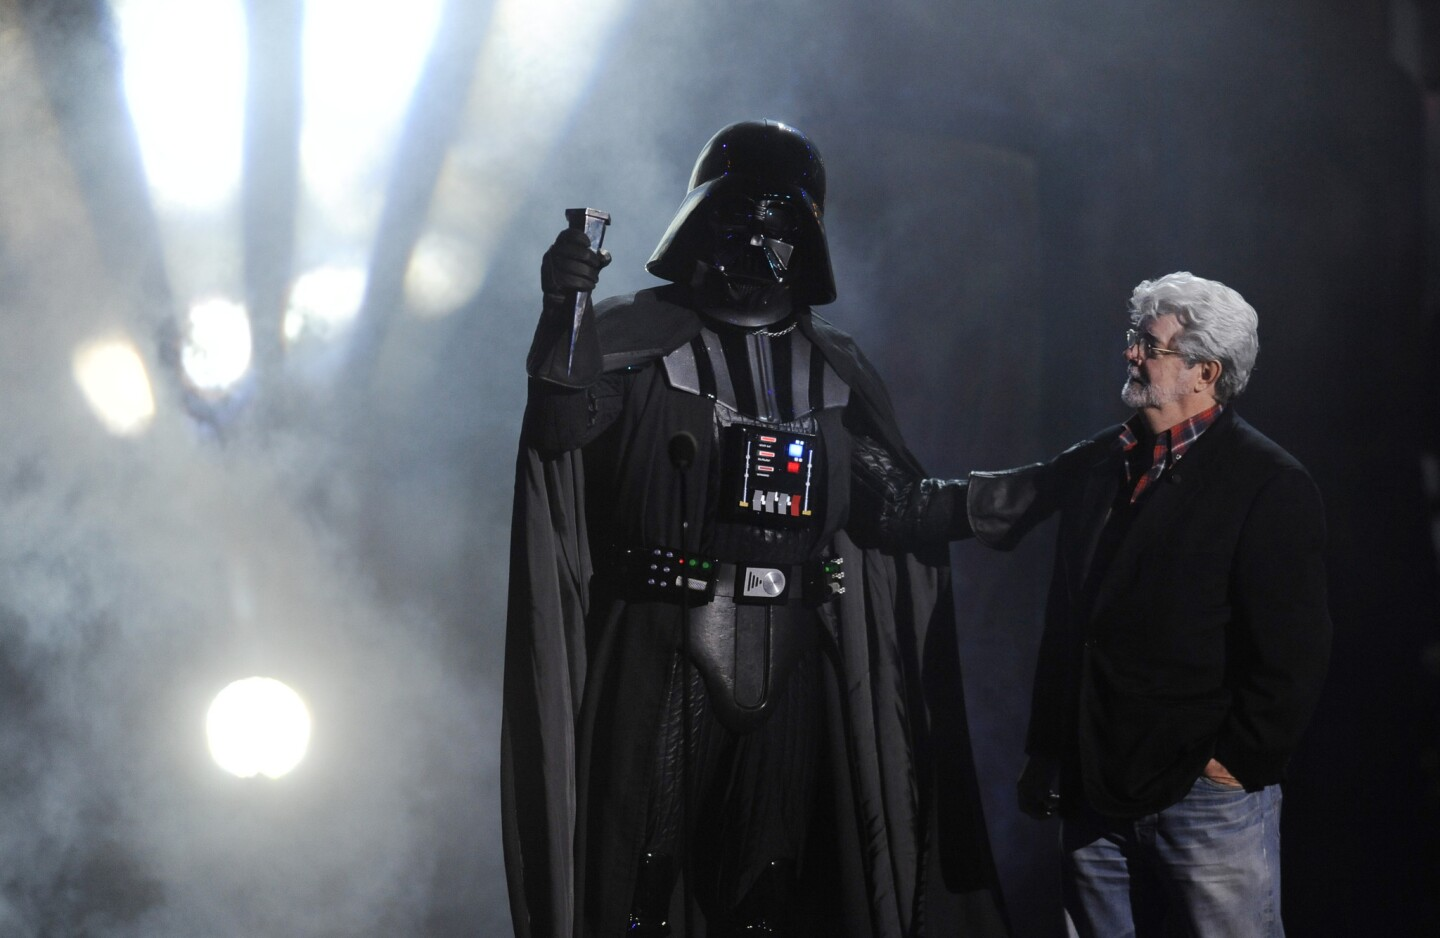 'Star Wars' returning to the silver screen